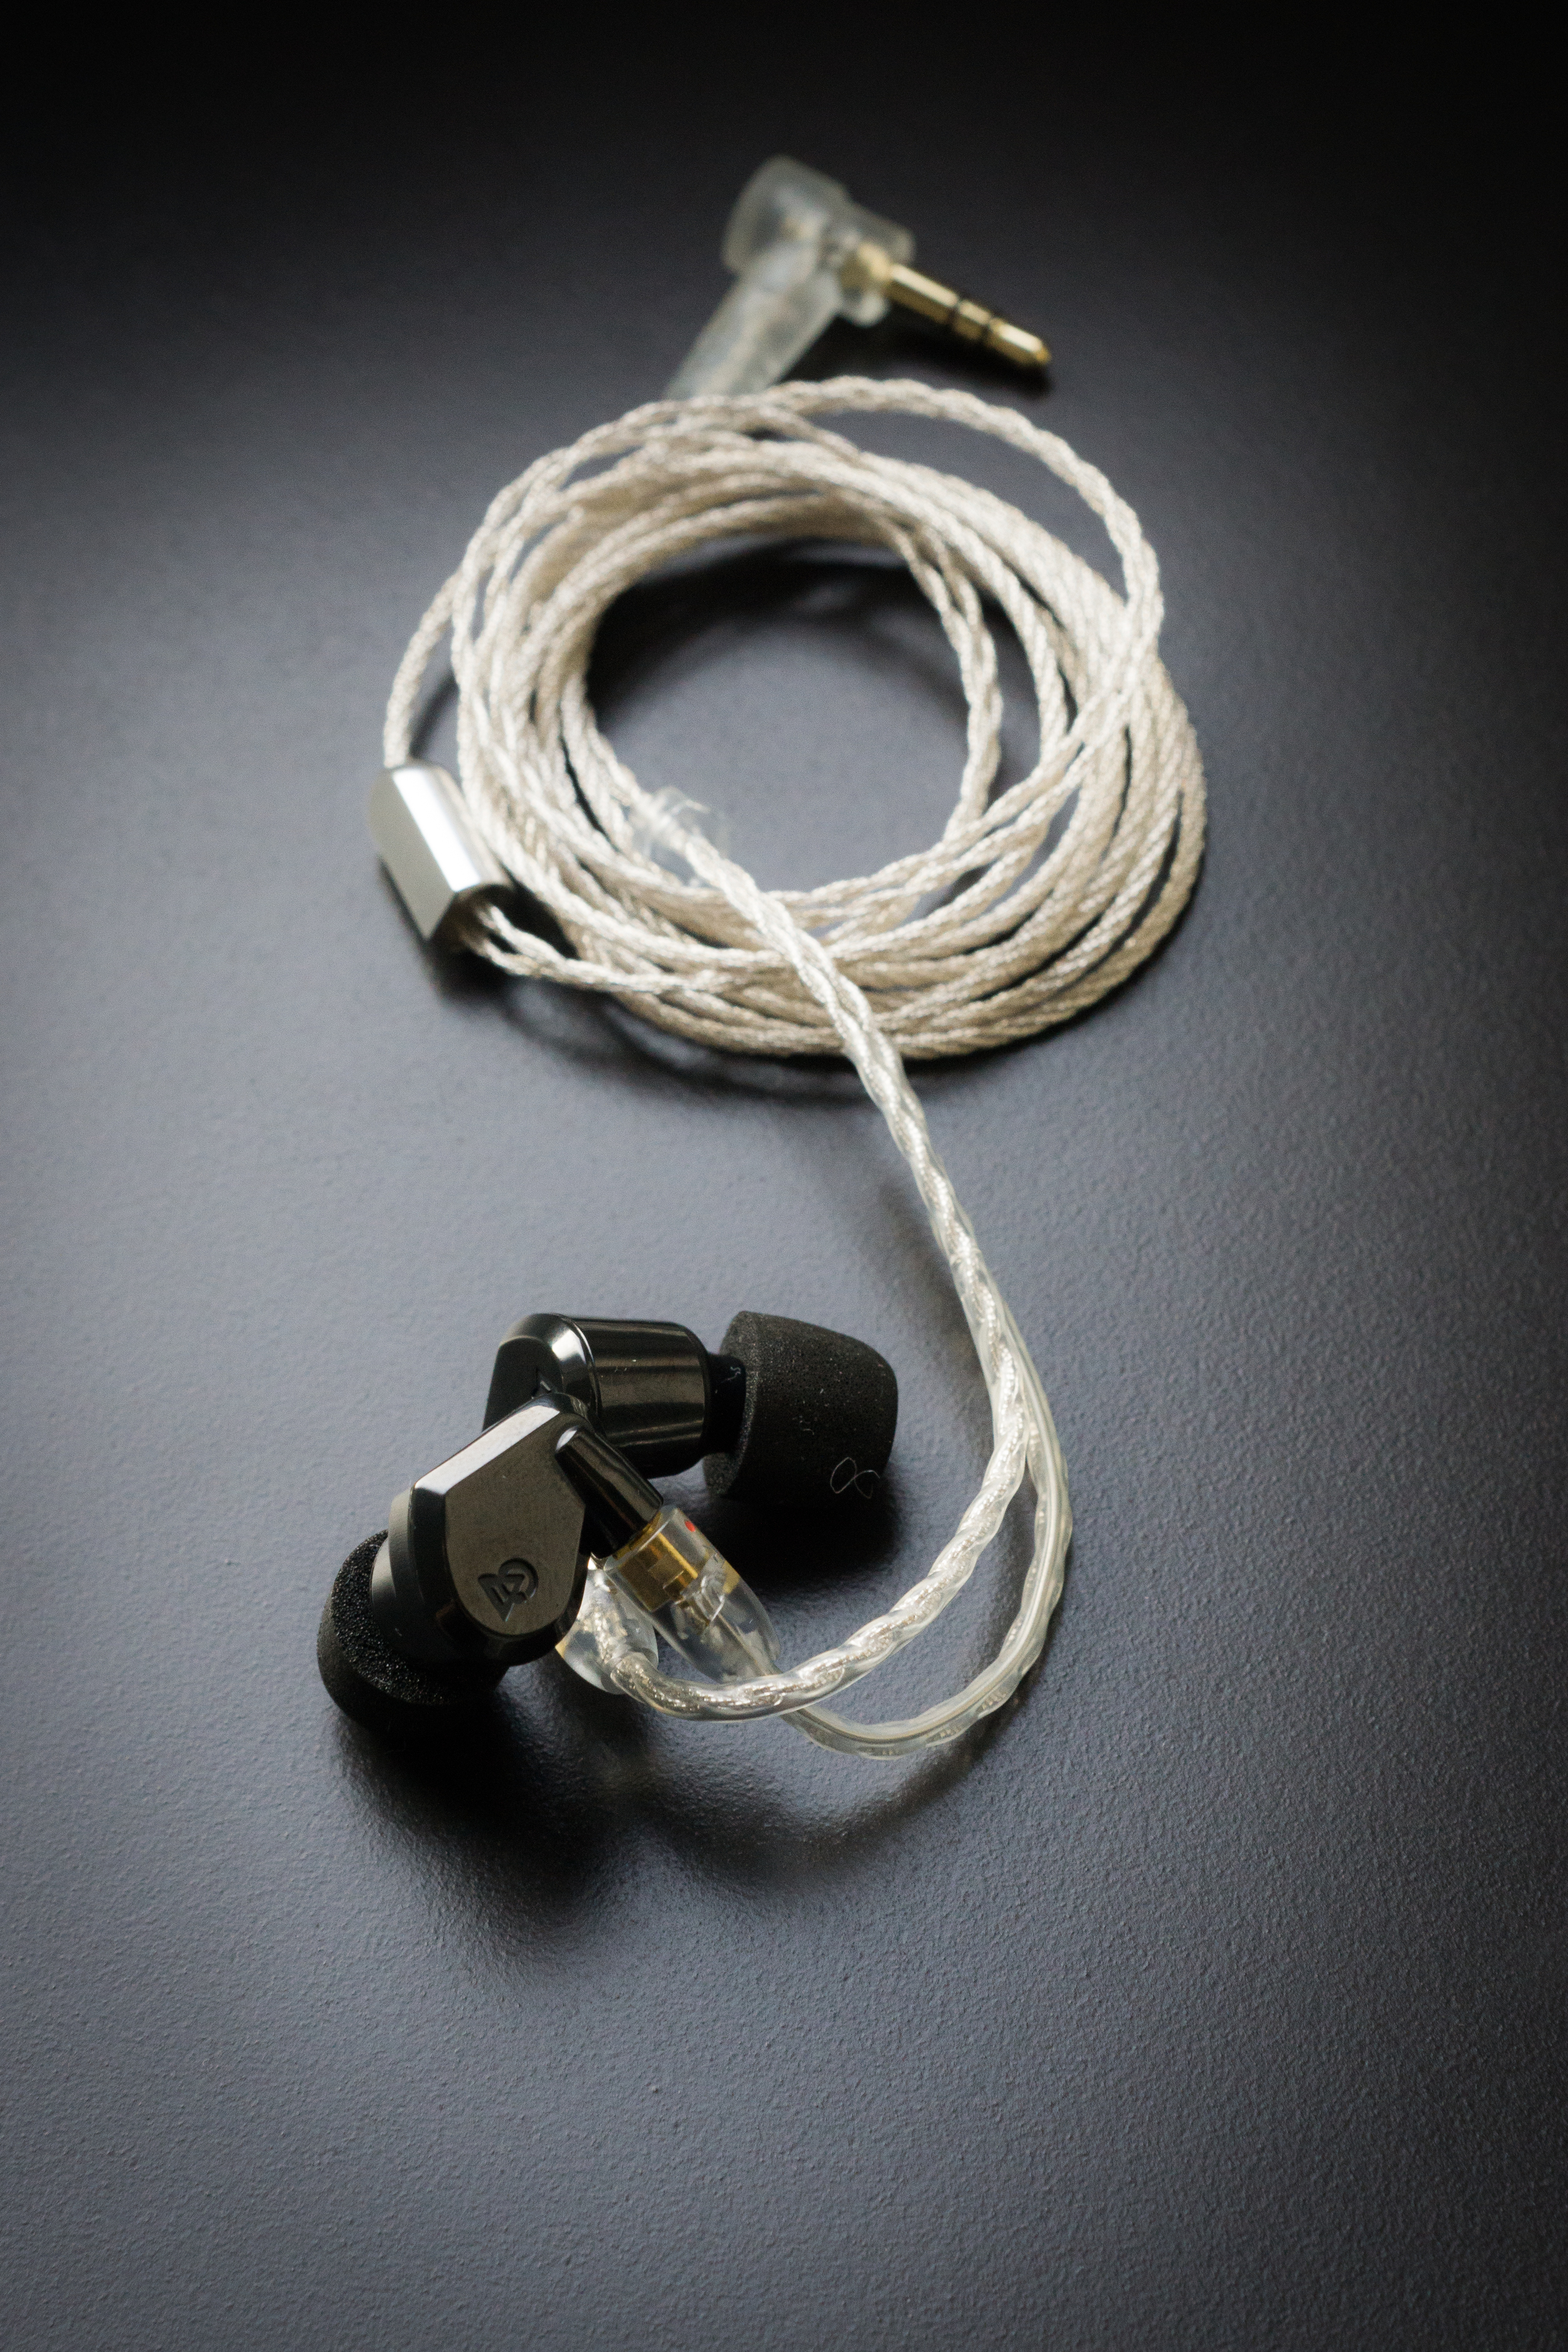 The Campfire Audio Lyra are one of the best earphones on the market today and they look real good too.